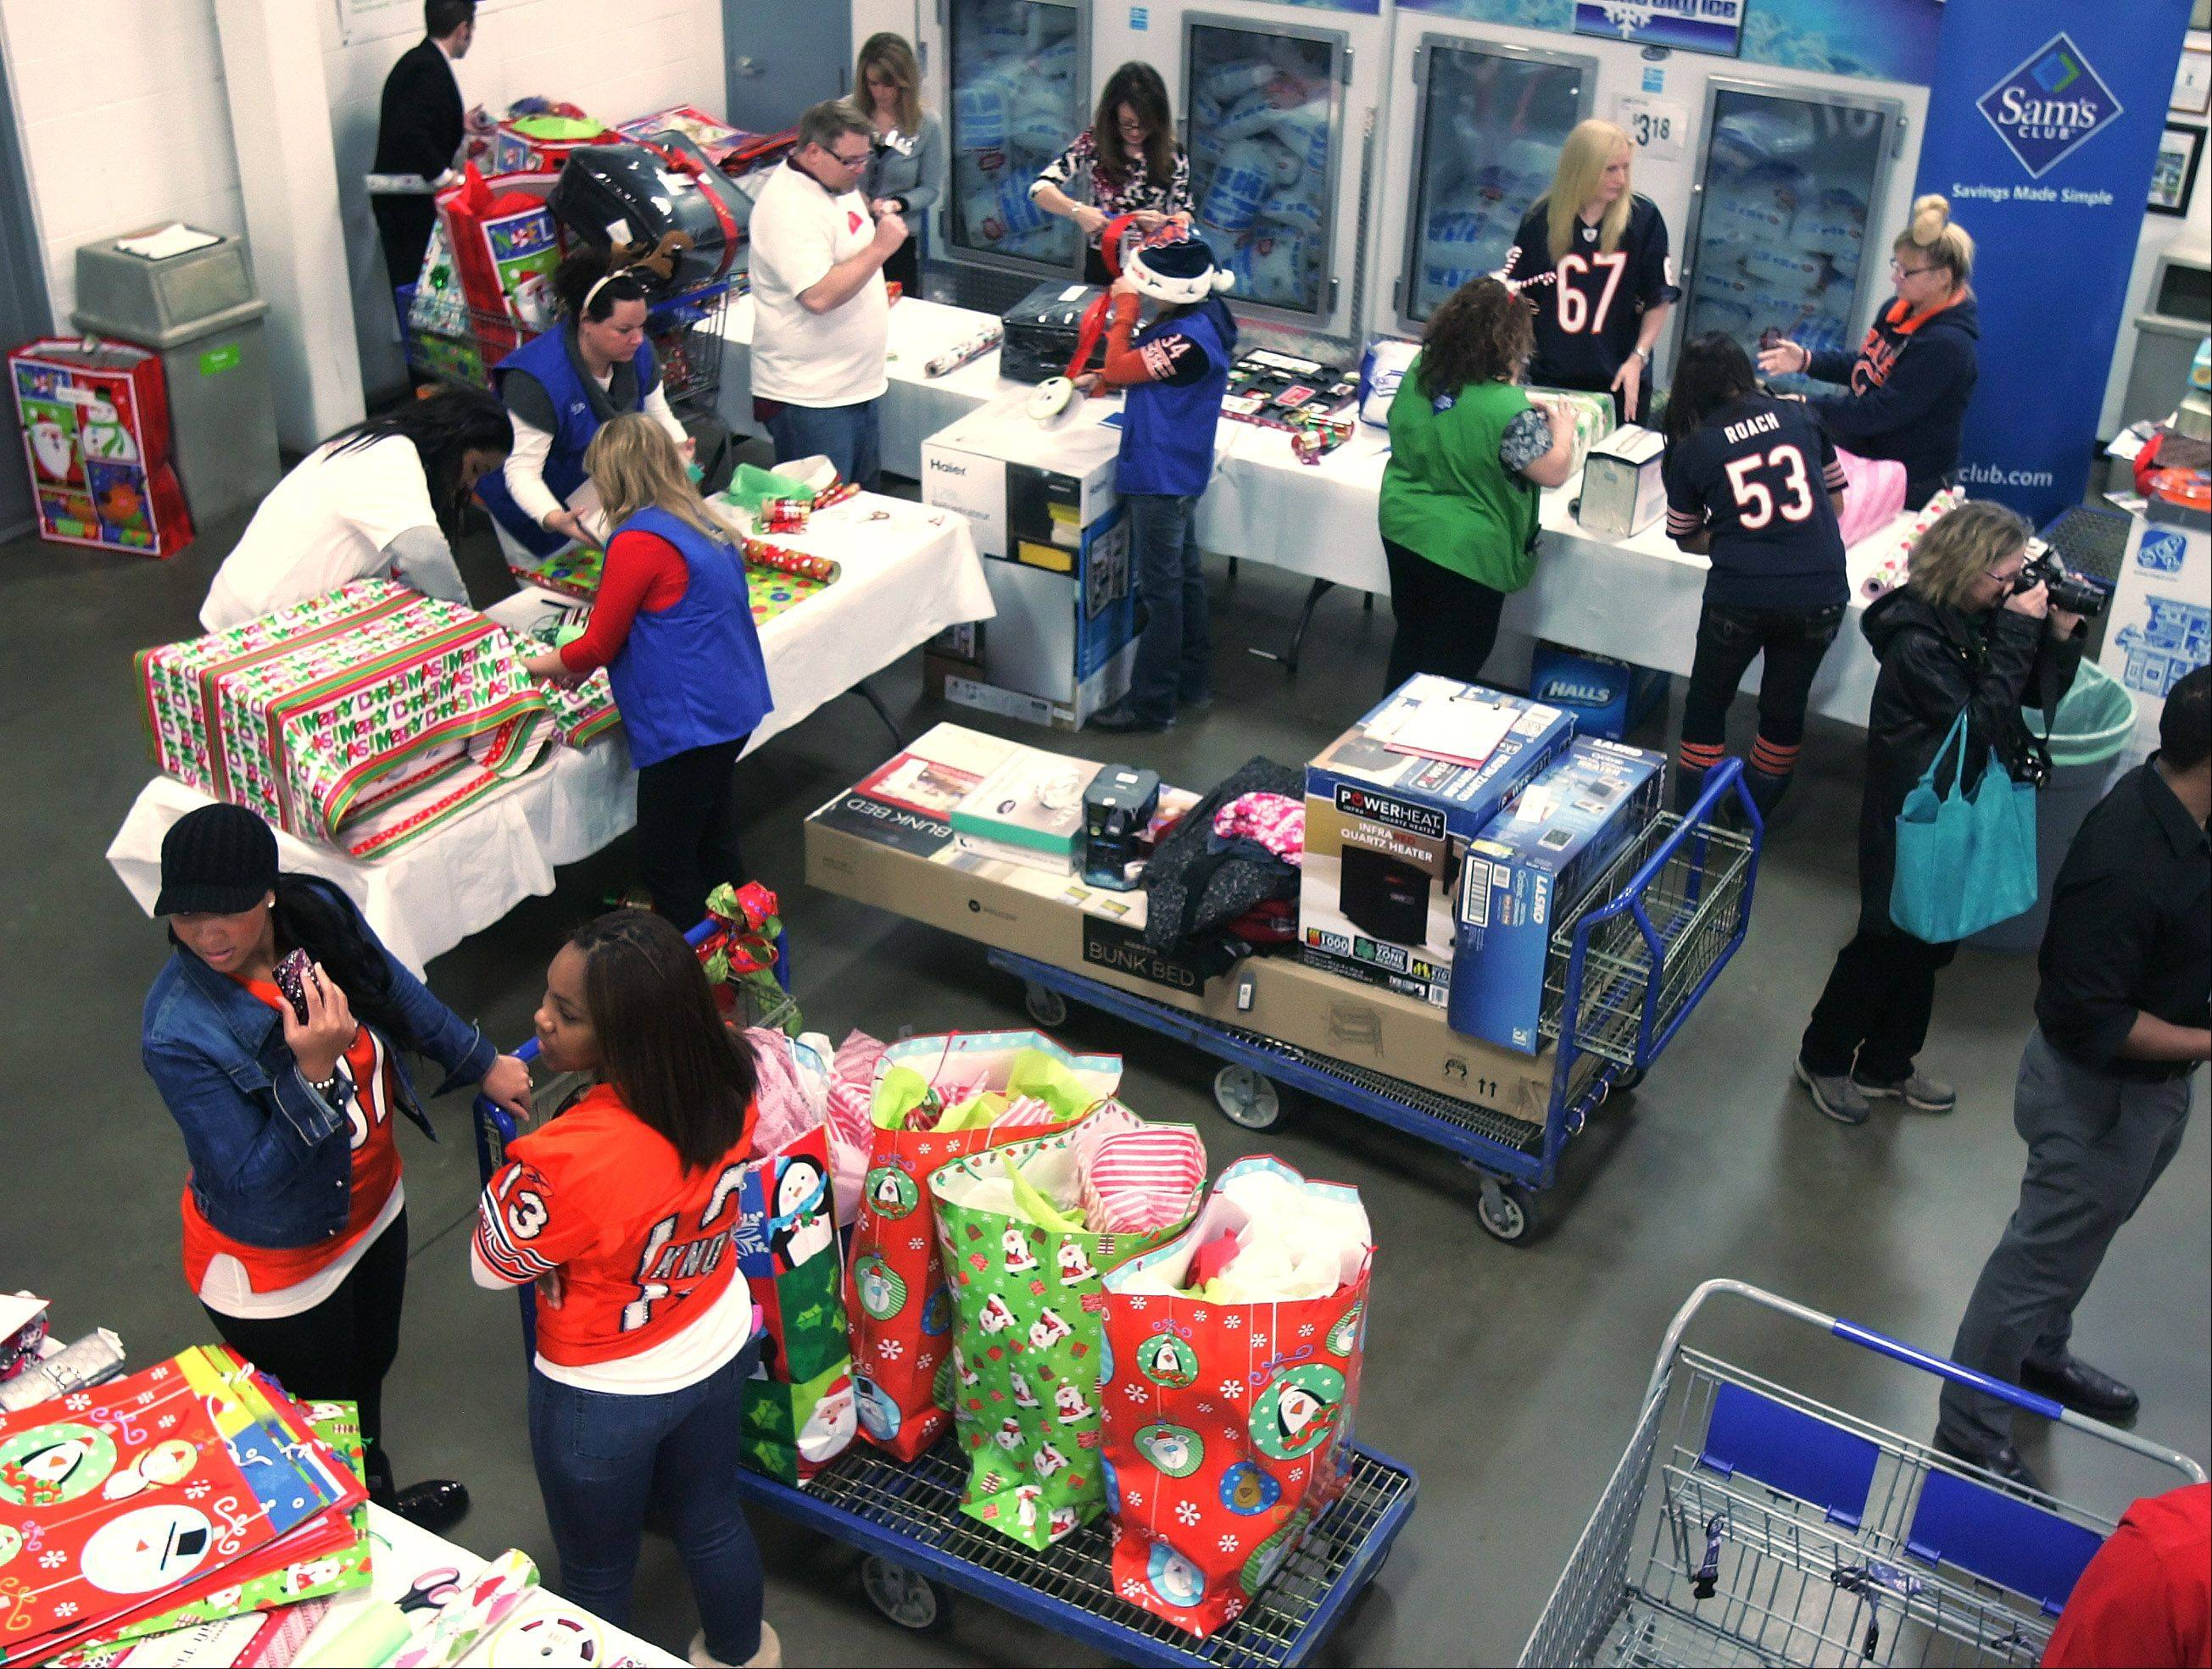 For the sixth consecutive year, Sam's Club teamed up with Off The Field, a nonprofit organization comprised of wives of the Chicago Bears, to help 20 families in the Chicago area selected by the Salvation Army during the holiday season. The women shopped for clothes, household products, and toys for local families in need at the Sam's Club in Vernon Hills.